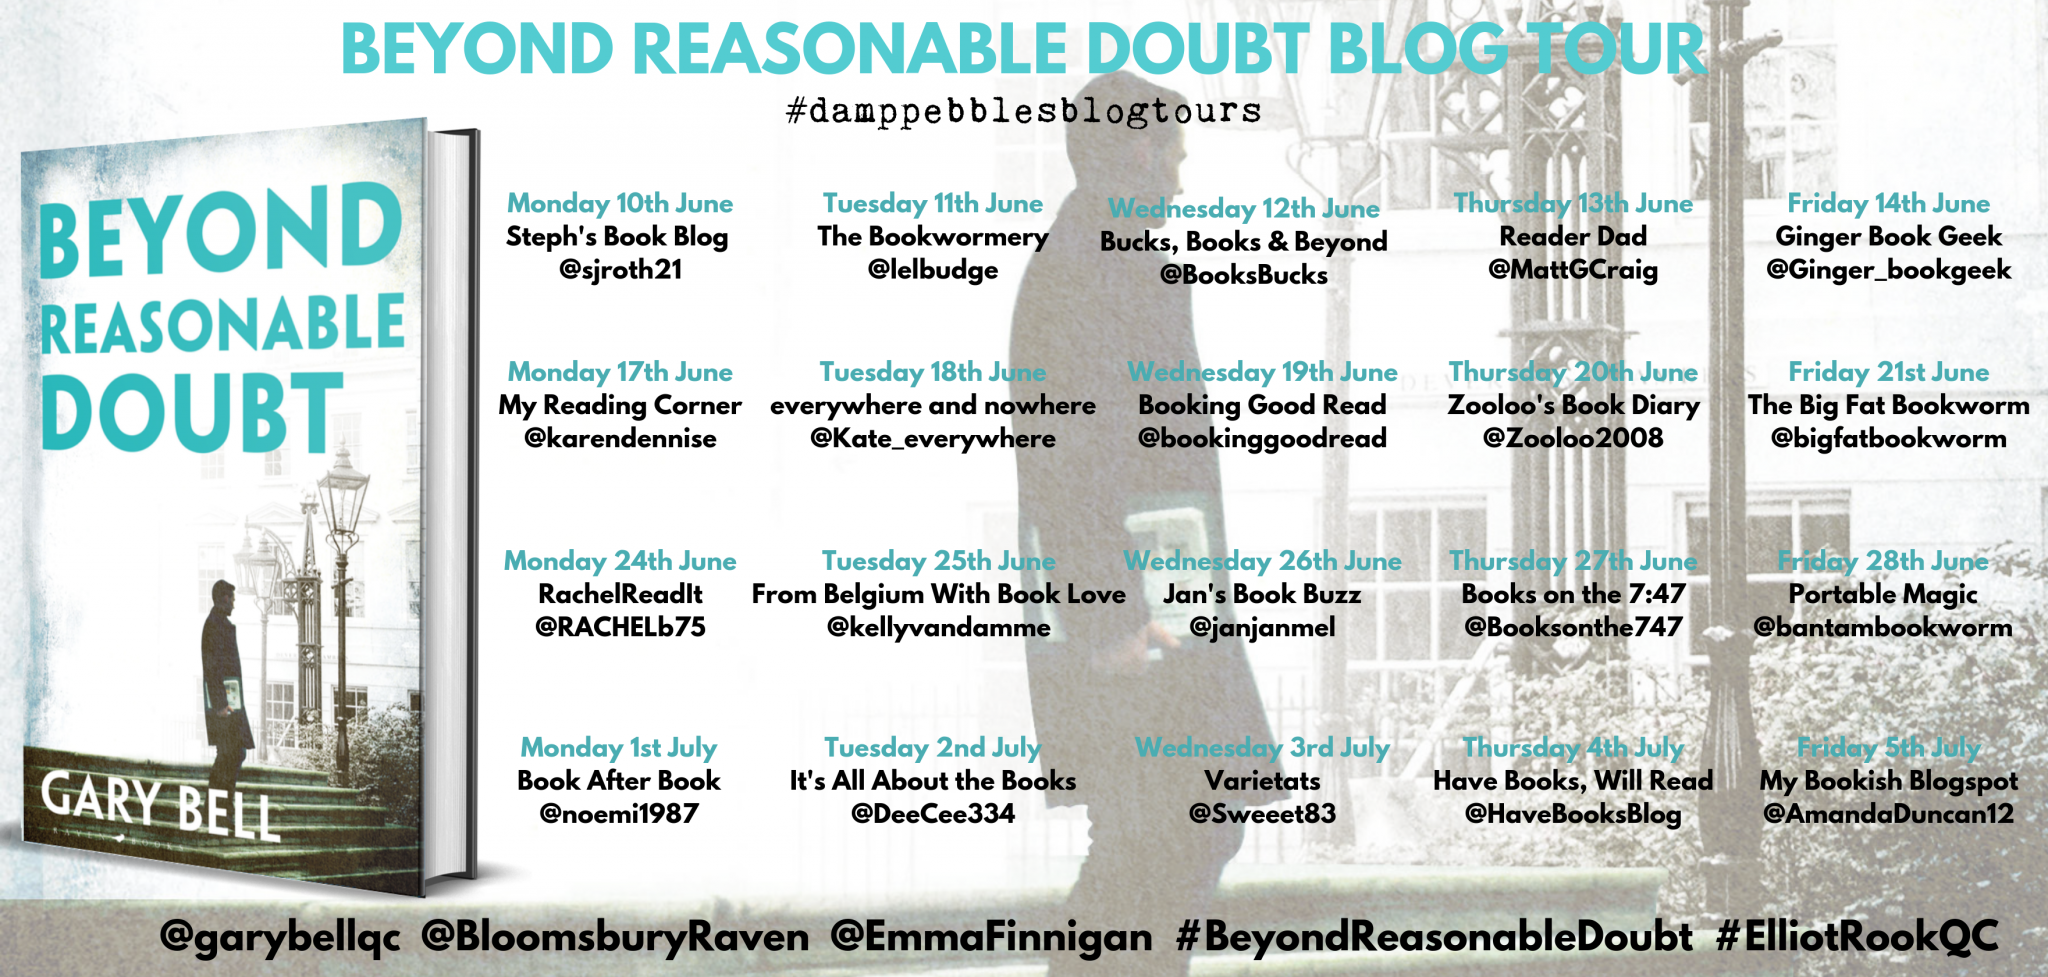 ***#BookReview of Beyond Reasonable Doubt by Gary Bell @garybellqc #BeyondReasonableDoubt #ElliotRookQC  @BloomsburyRaven @EmmaFinnigan @damppebbles #damppebblesblogtours